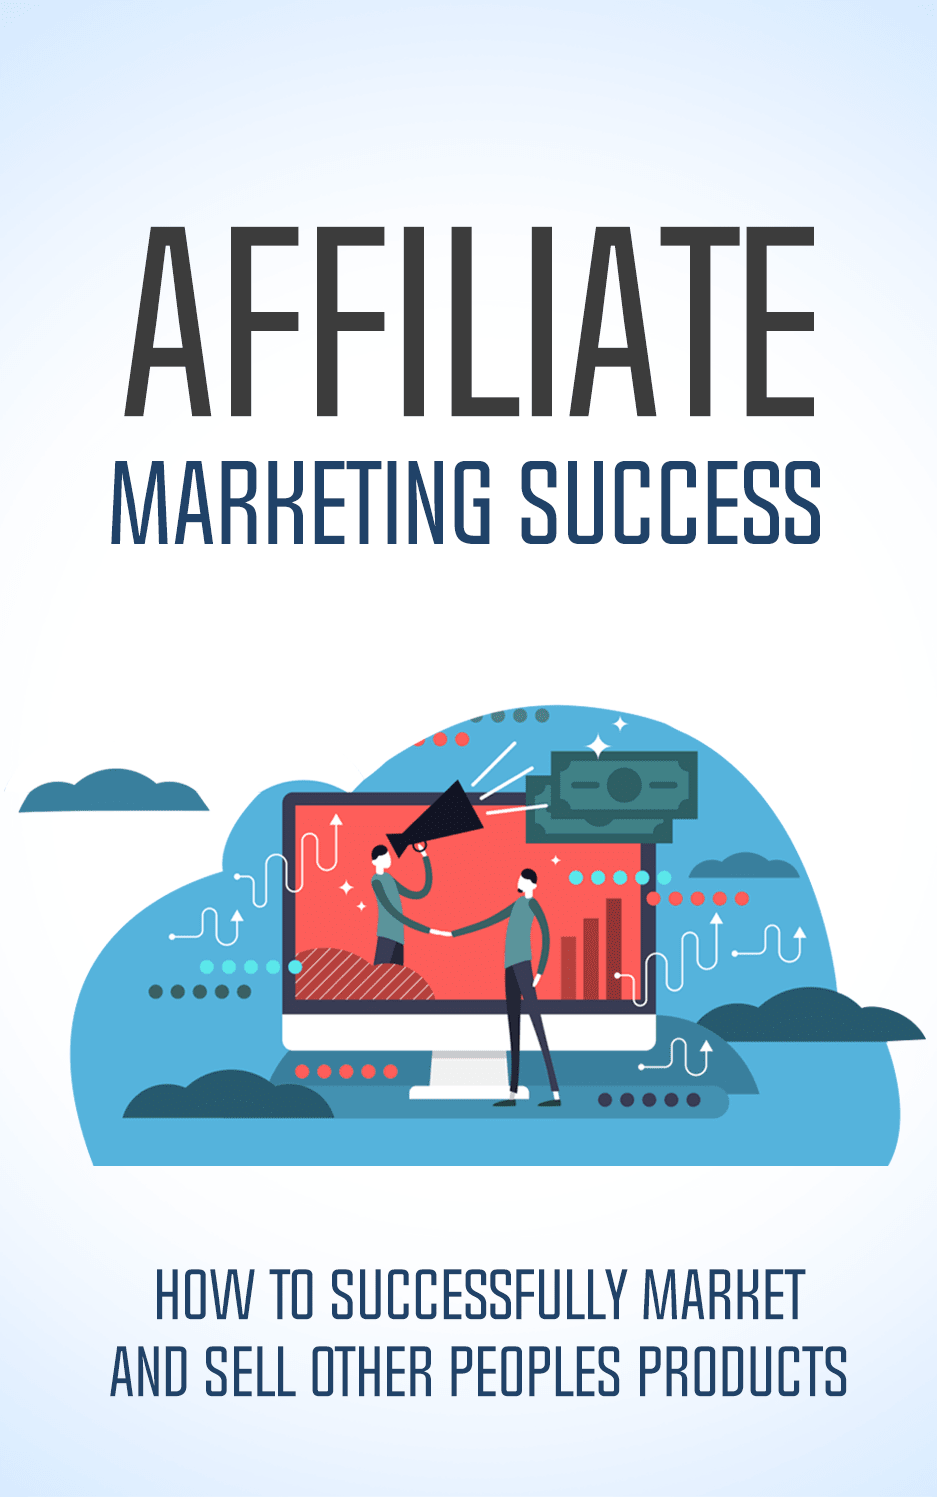 Affiliate Marketing Success (How To Successfully Market And Sell Other Peoples Products) Ebook's Ebook Image